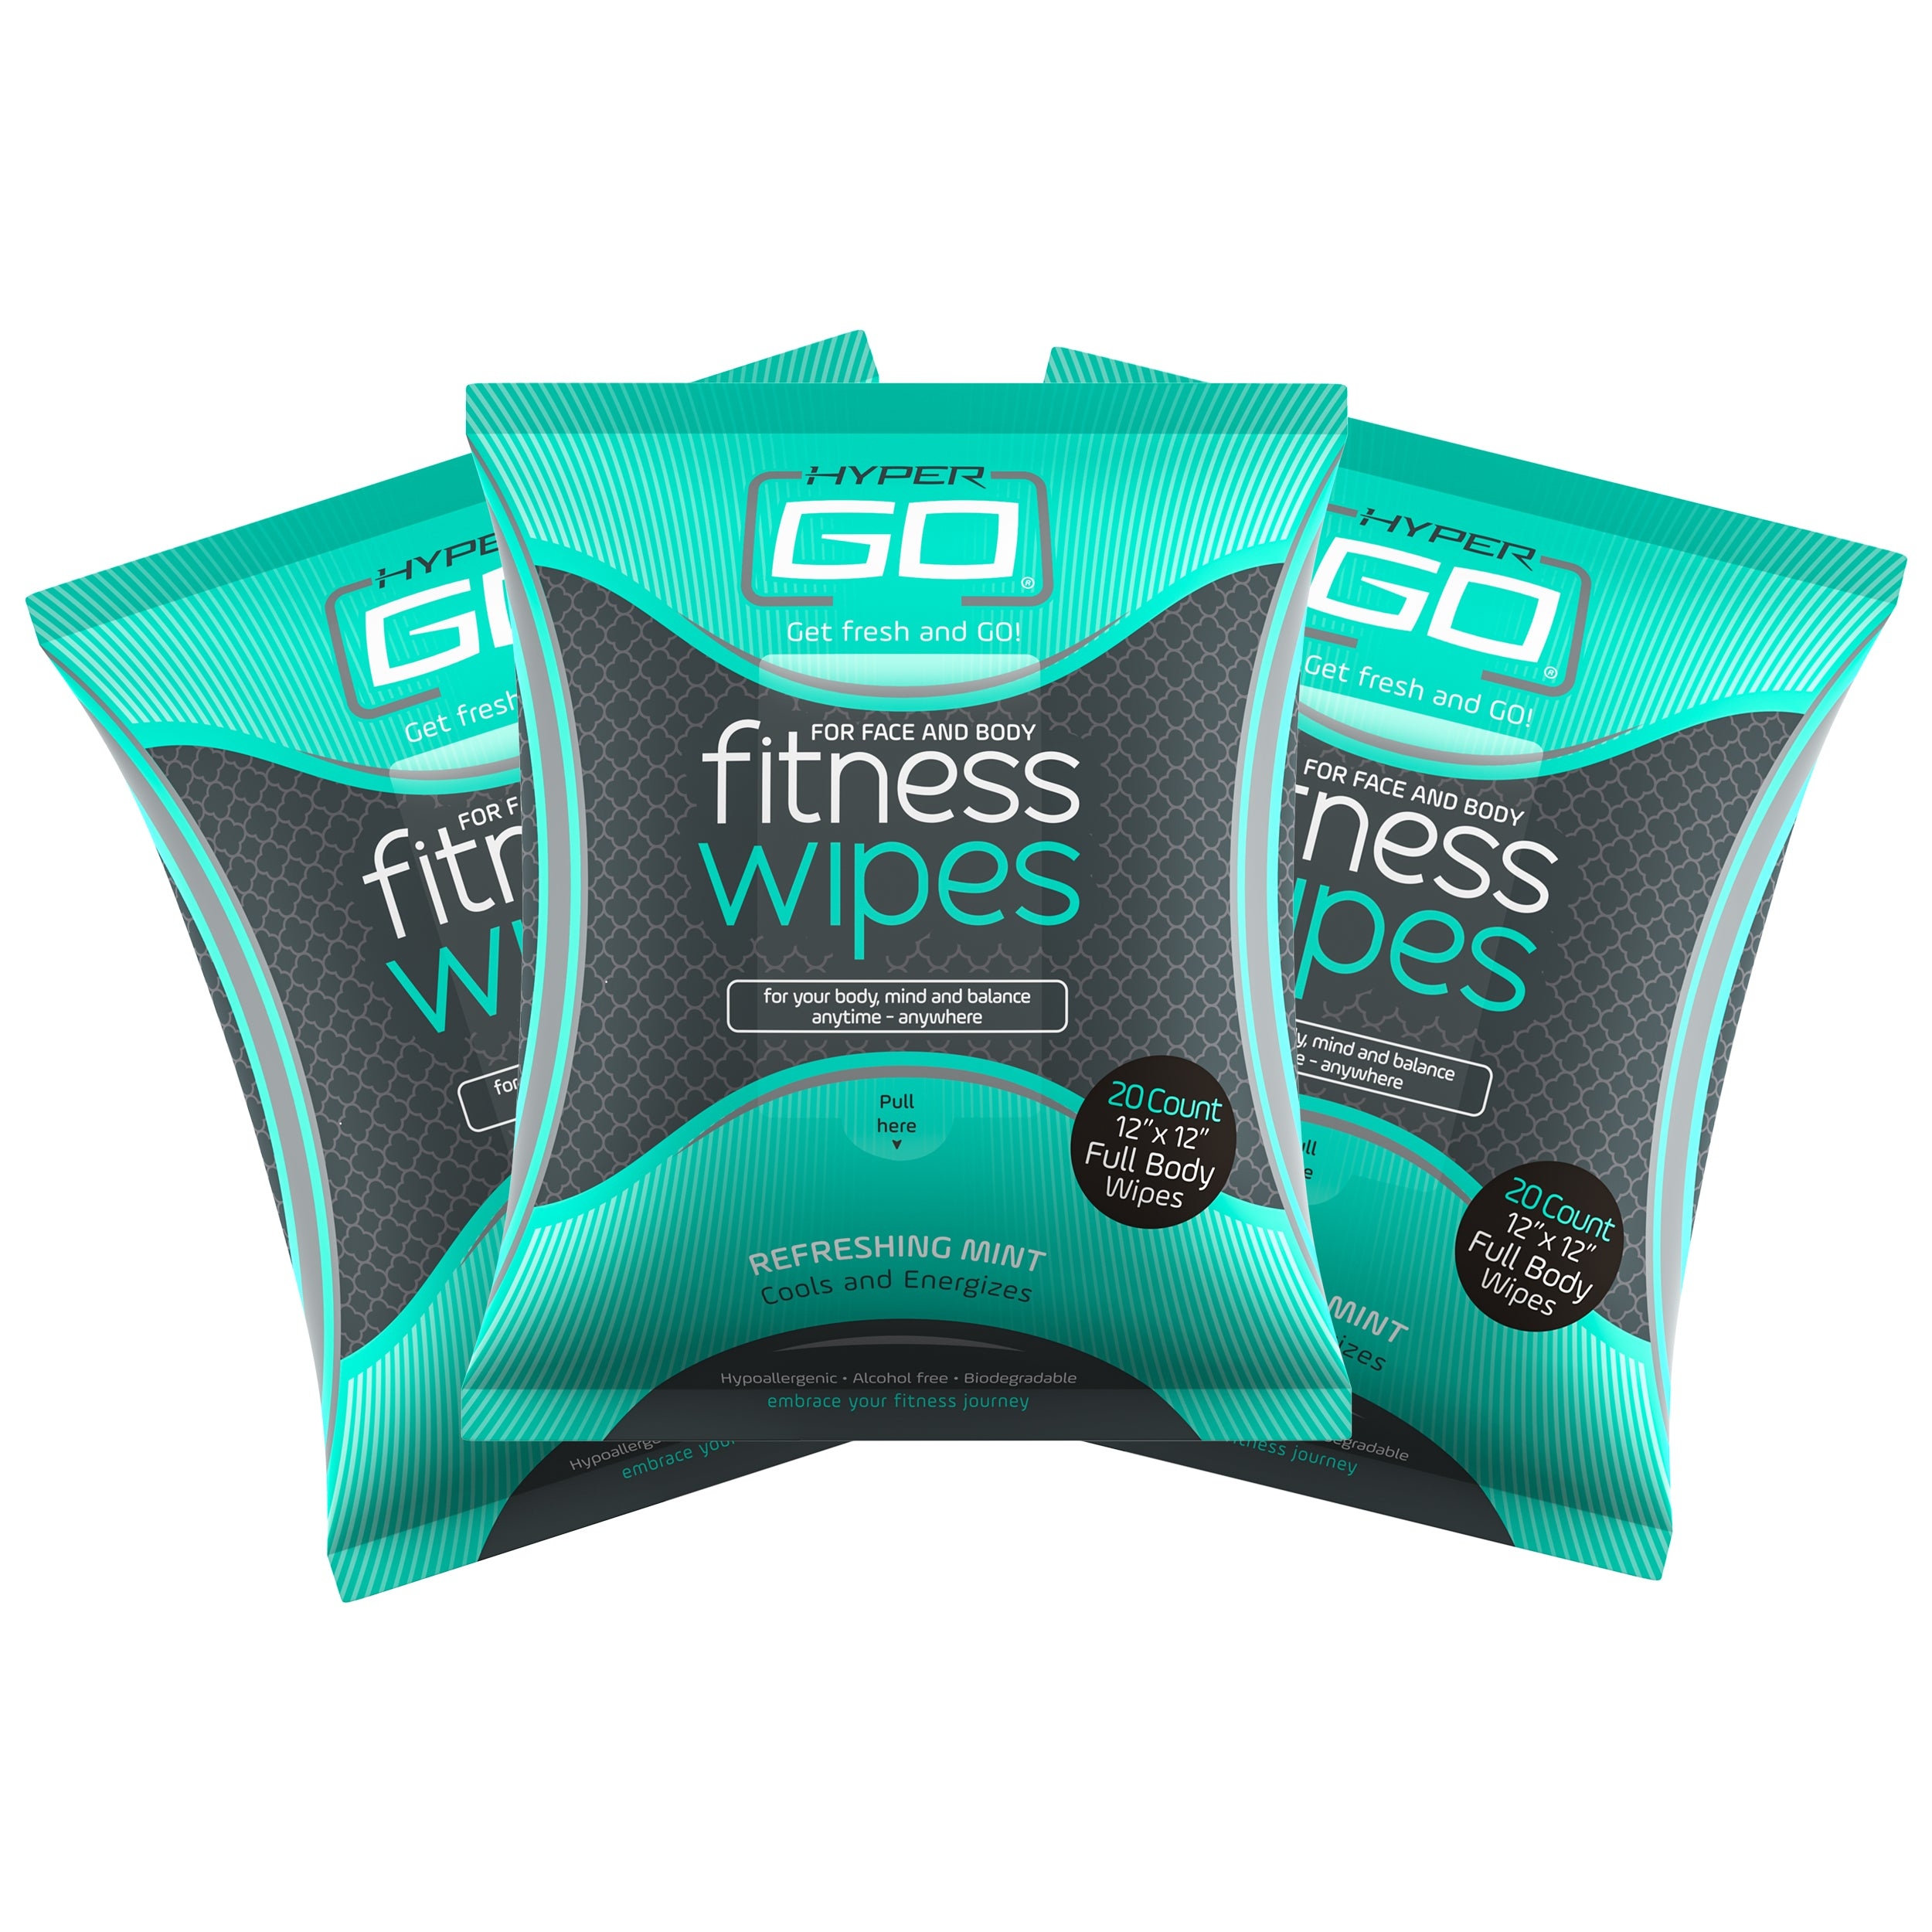 HyperGo: Full Body Fitness Wipes, All Natural Body Cleansing Wipes, Clean Off Odor and Sweat, (Mint Scent) - Pack of 3